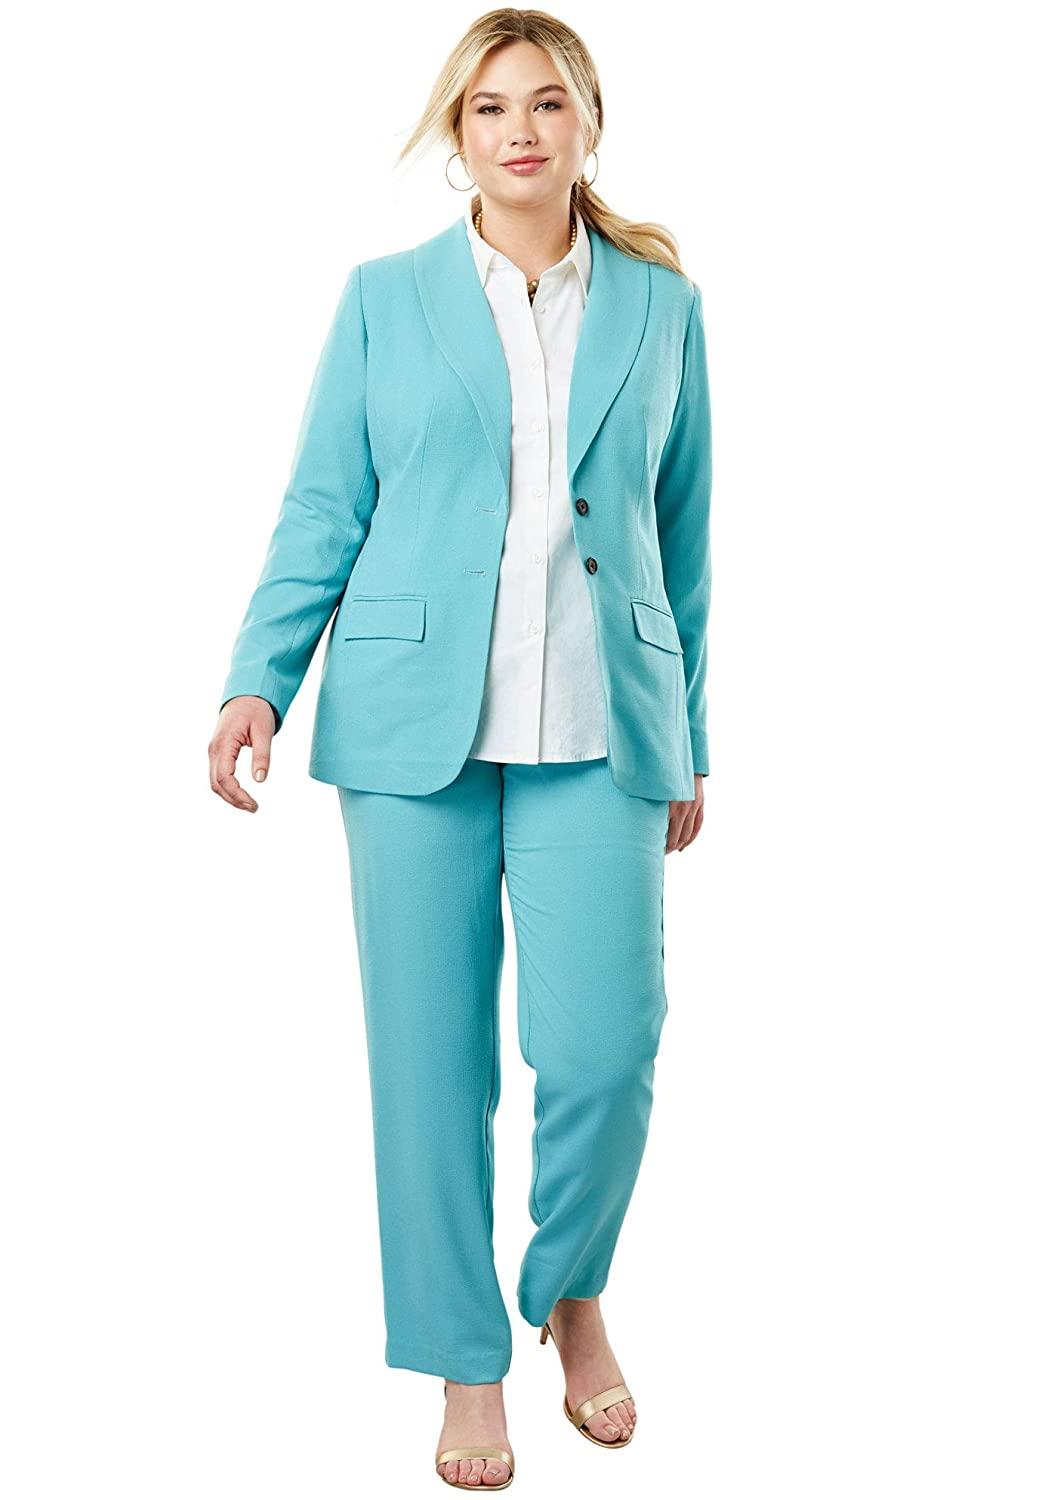 Jessica London Womens Plus Size Single Breasted Pant Suit